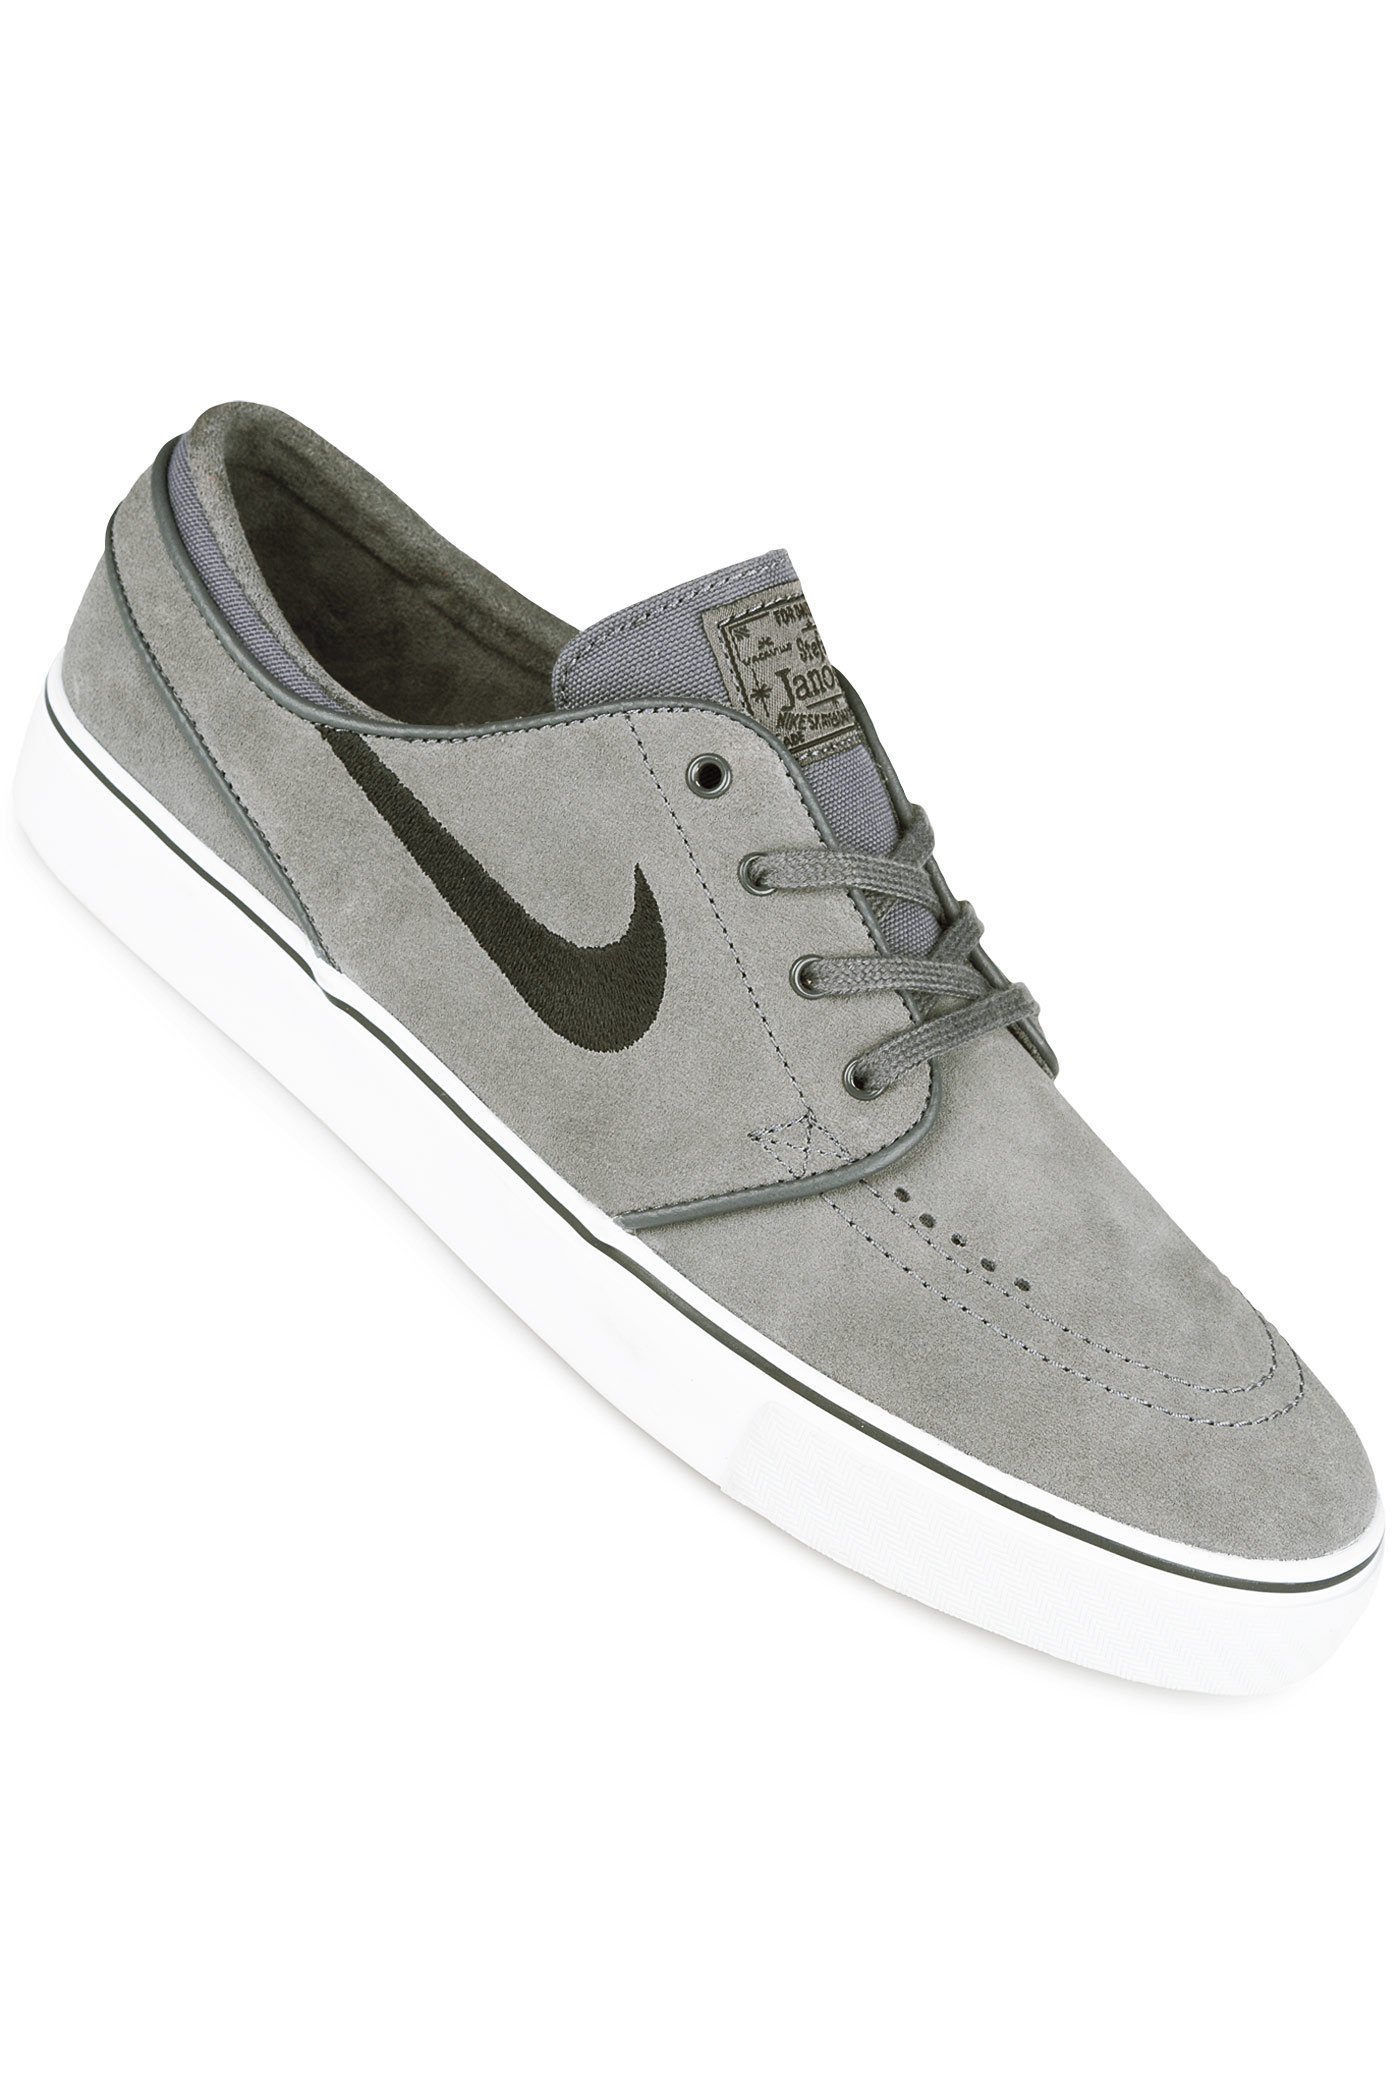 nike sb zoom stefan janoski shoes dark grey black buy at. Black Bedroom Furniture Sets. Home Design Ideas